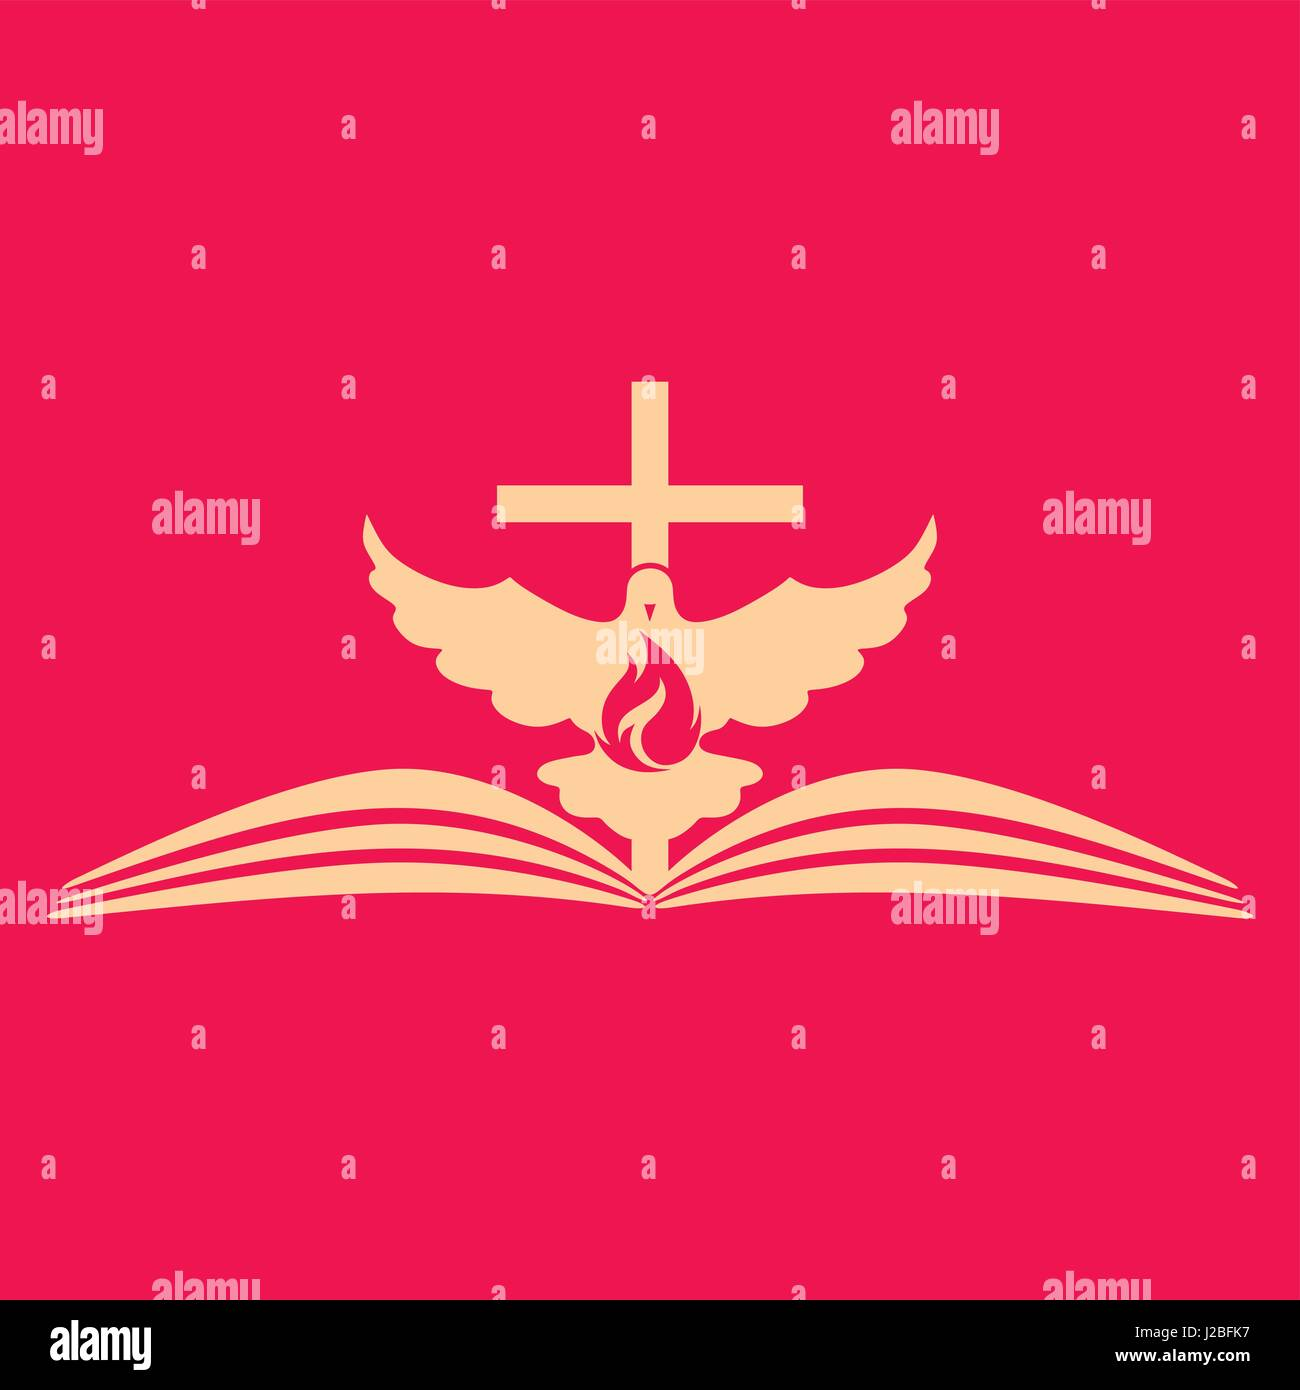 Church Logo The Open Bible The Cross And The Dove Are A Symbol Of